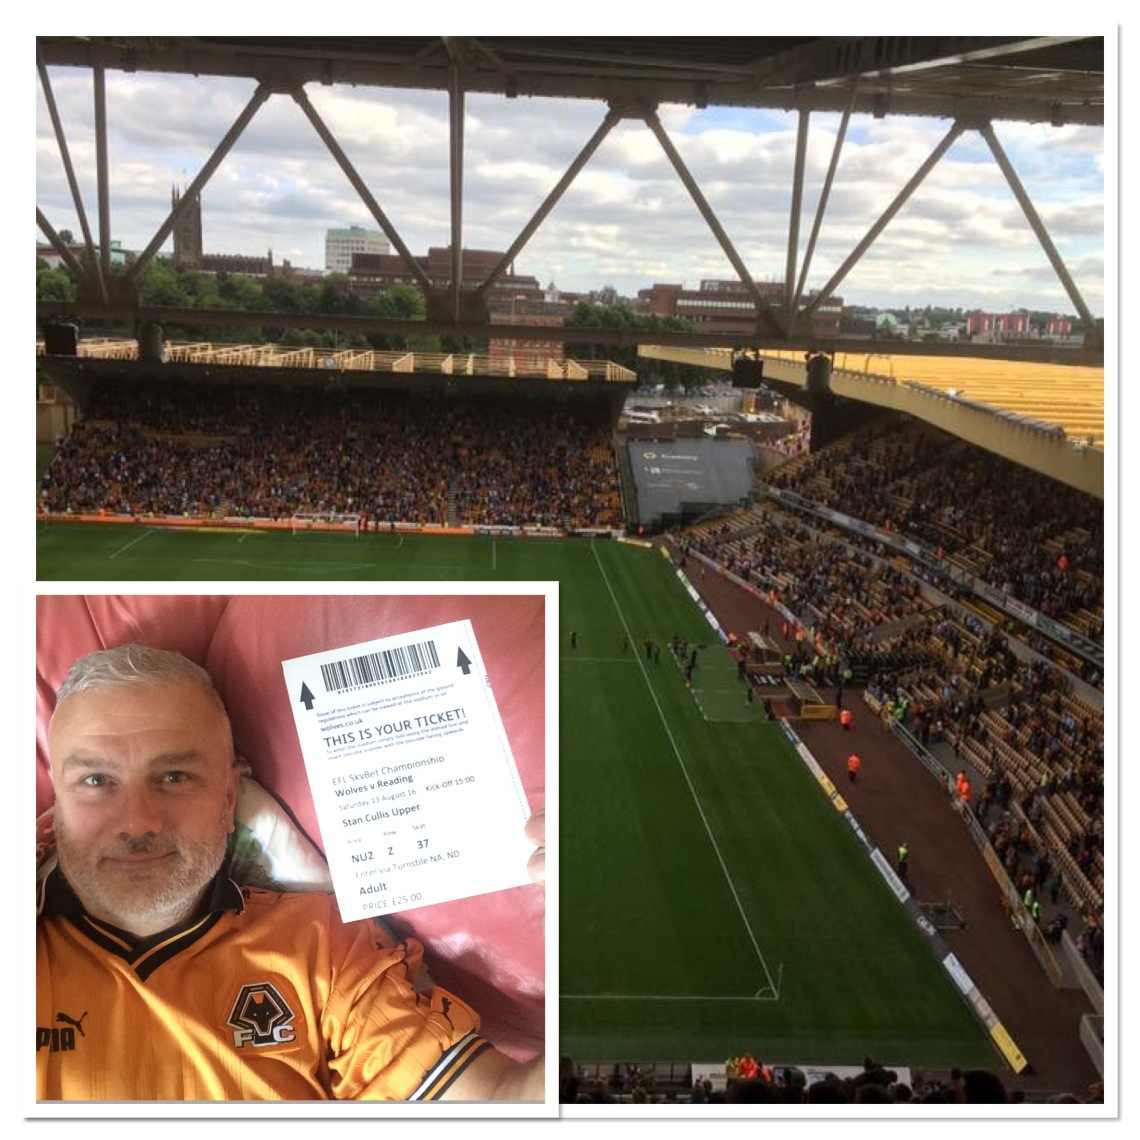 At Molineux for the start of the season